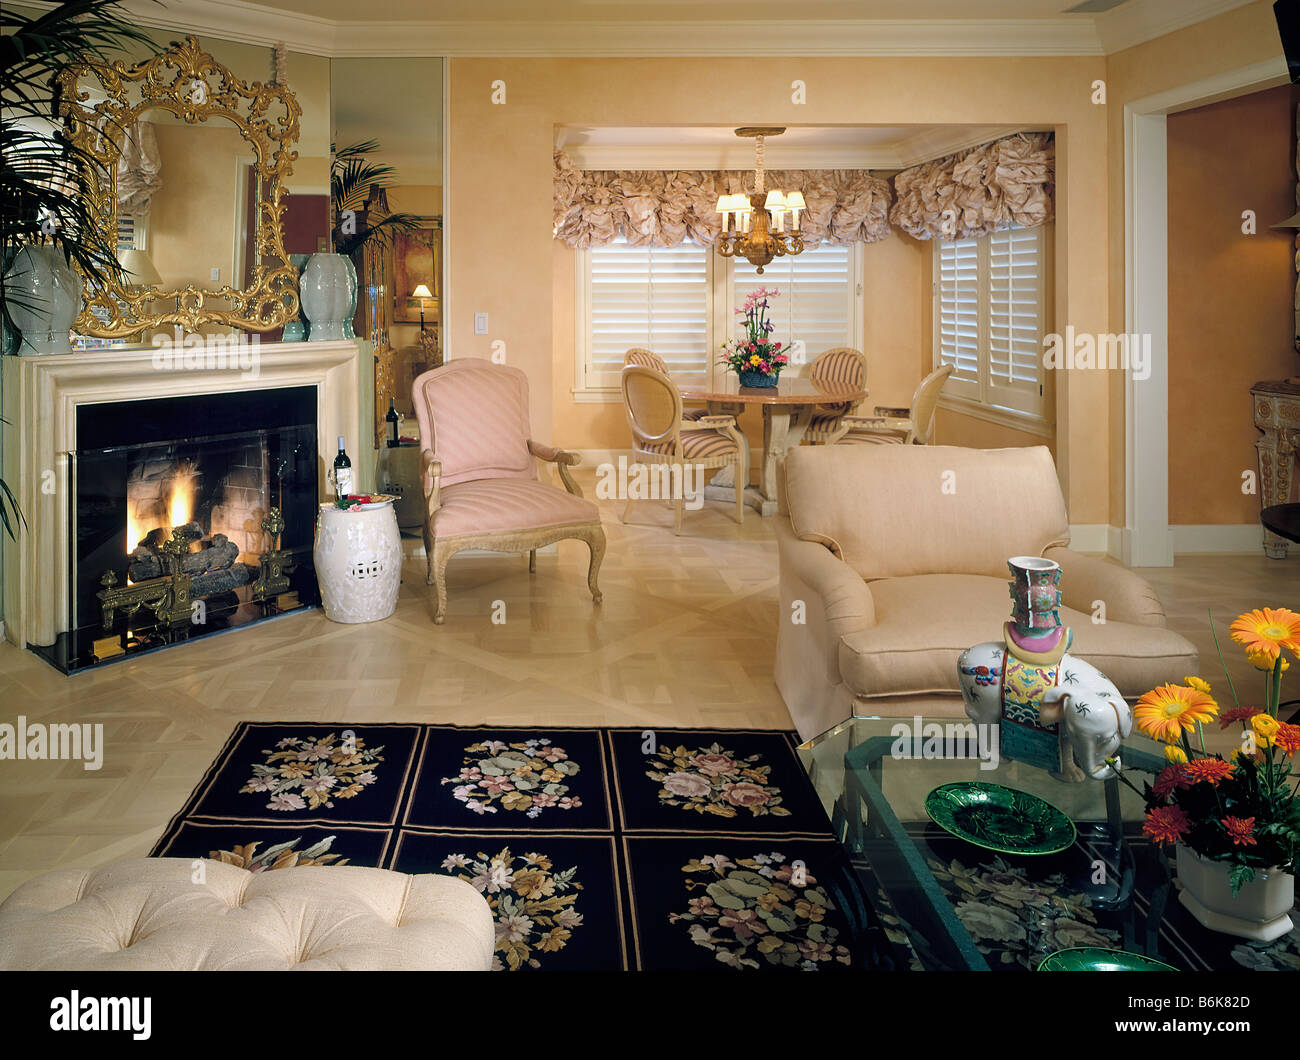 Beverly Hills Hotel Bungalow California Architectural Interior Design Resort Luxury Home Fireplace Stylish